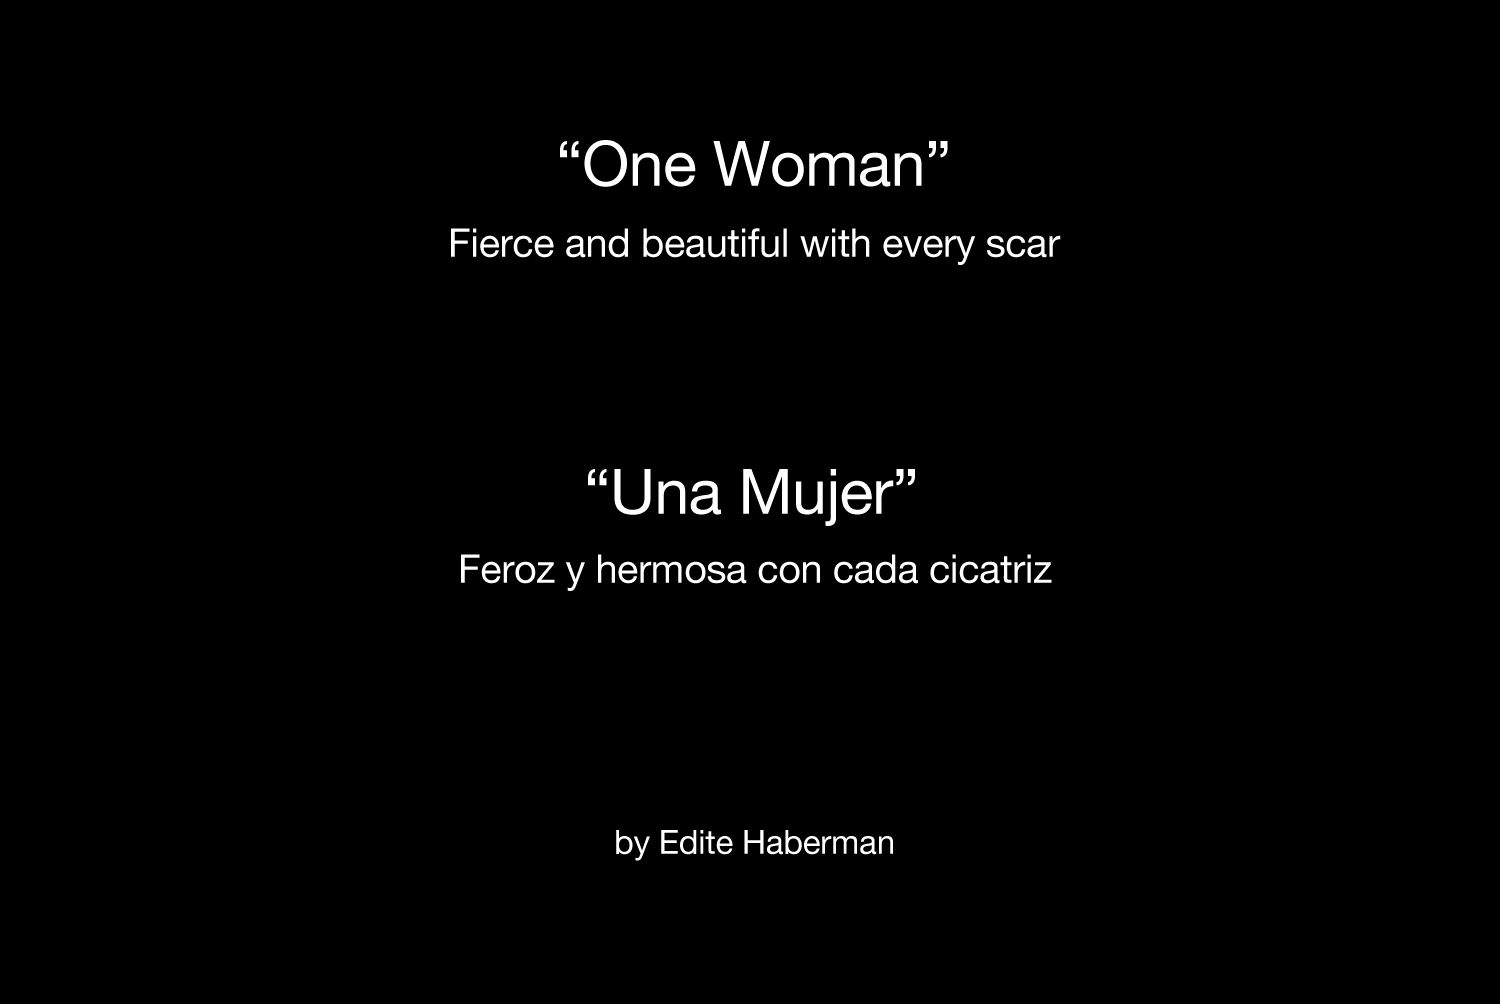 0.One Woman_Title_Frame.jpg